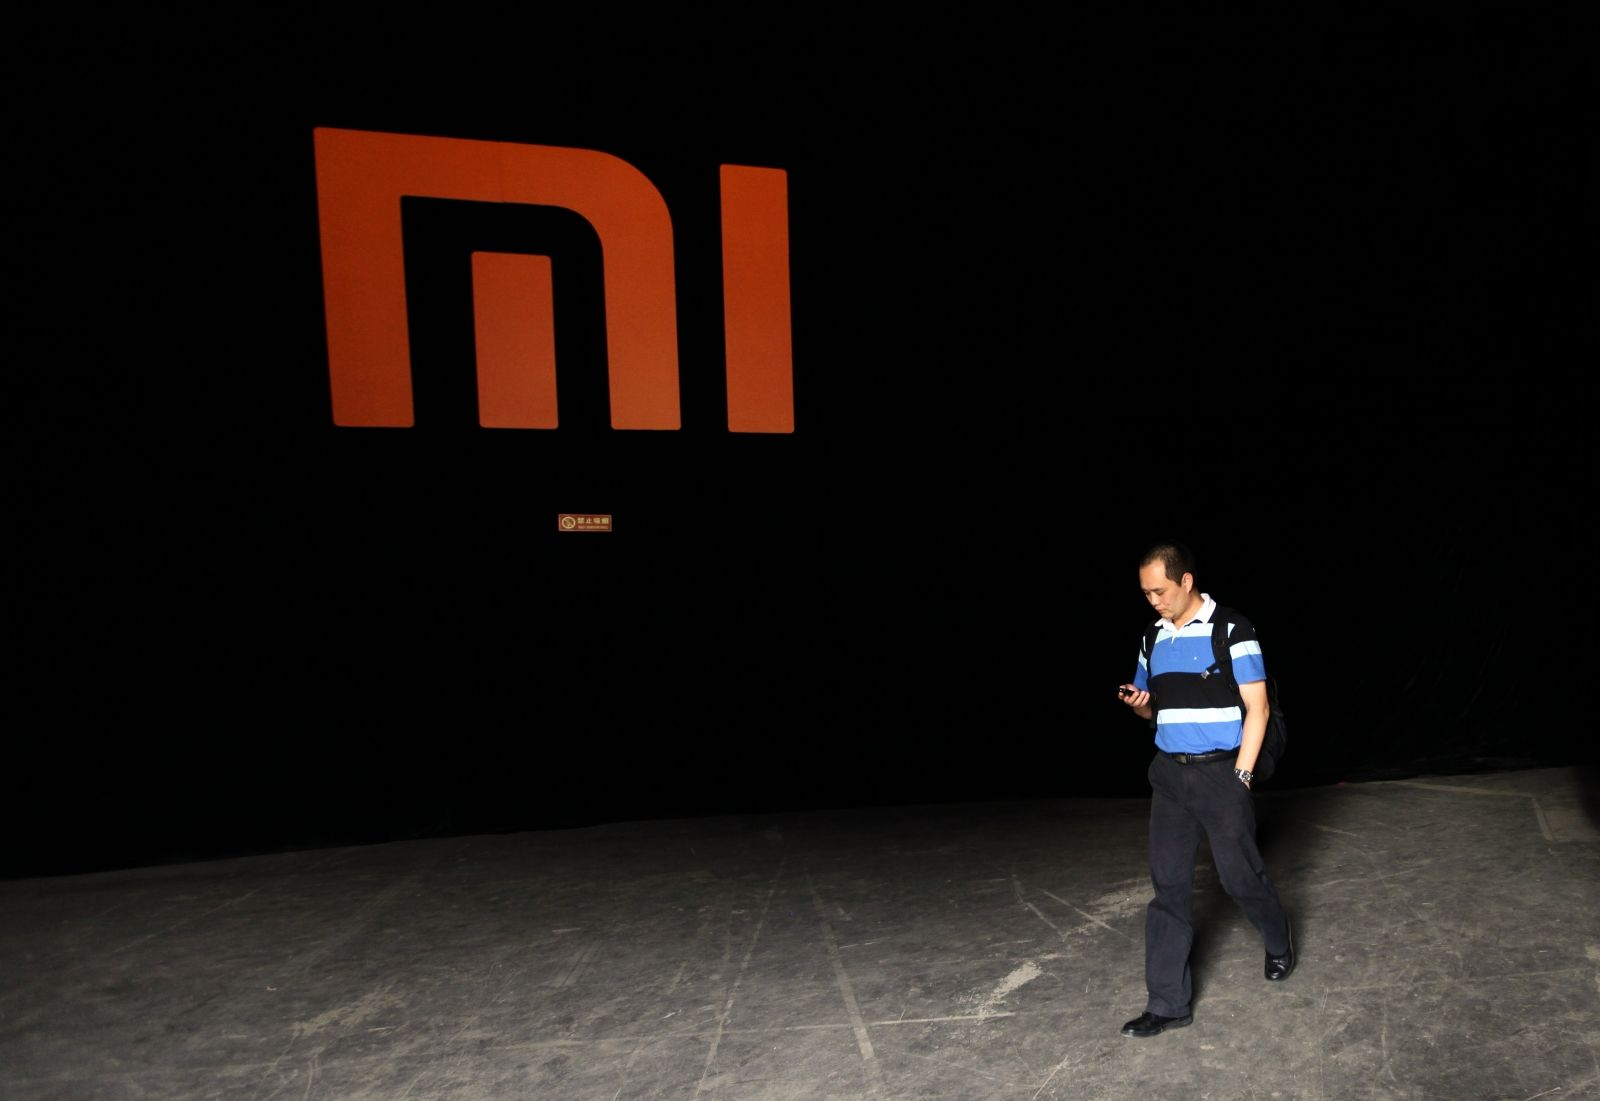 Xiaomi to unveil MIUI 7 on 16 August Report Apple watch